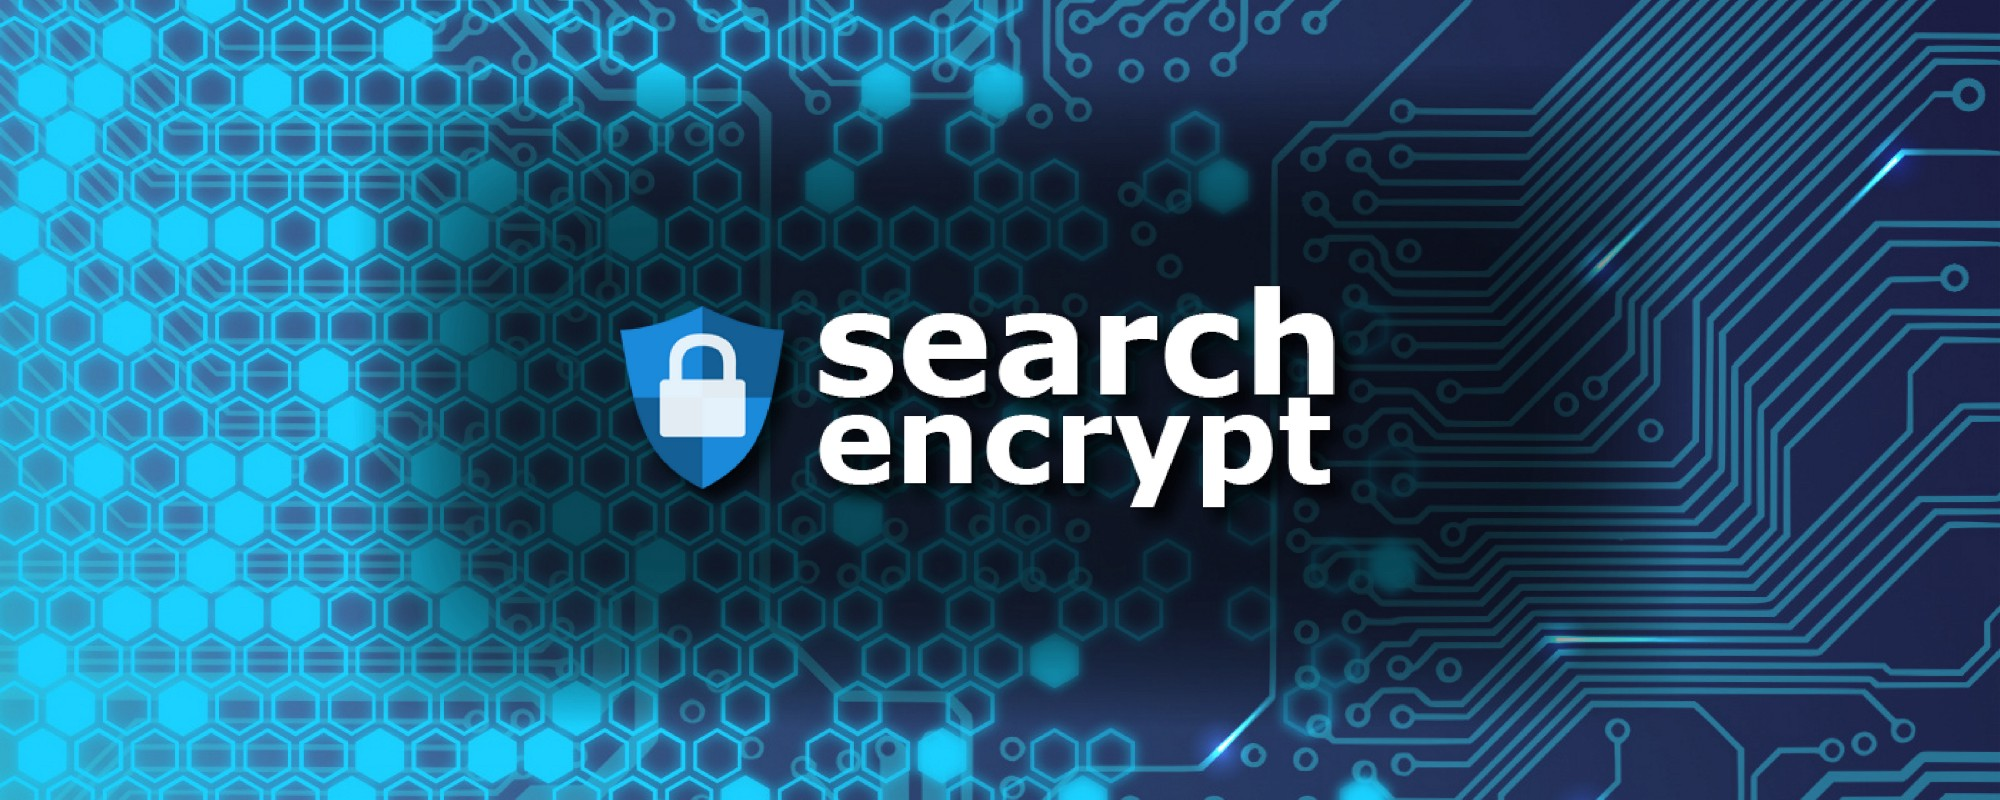 How Search Encrypt Works When You Search the Web